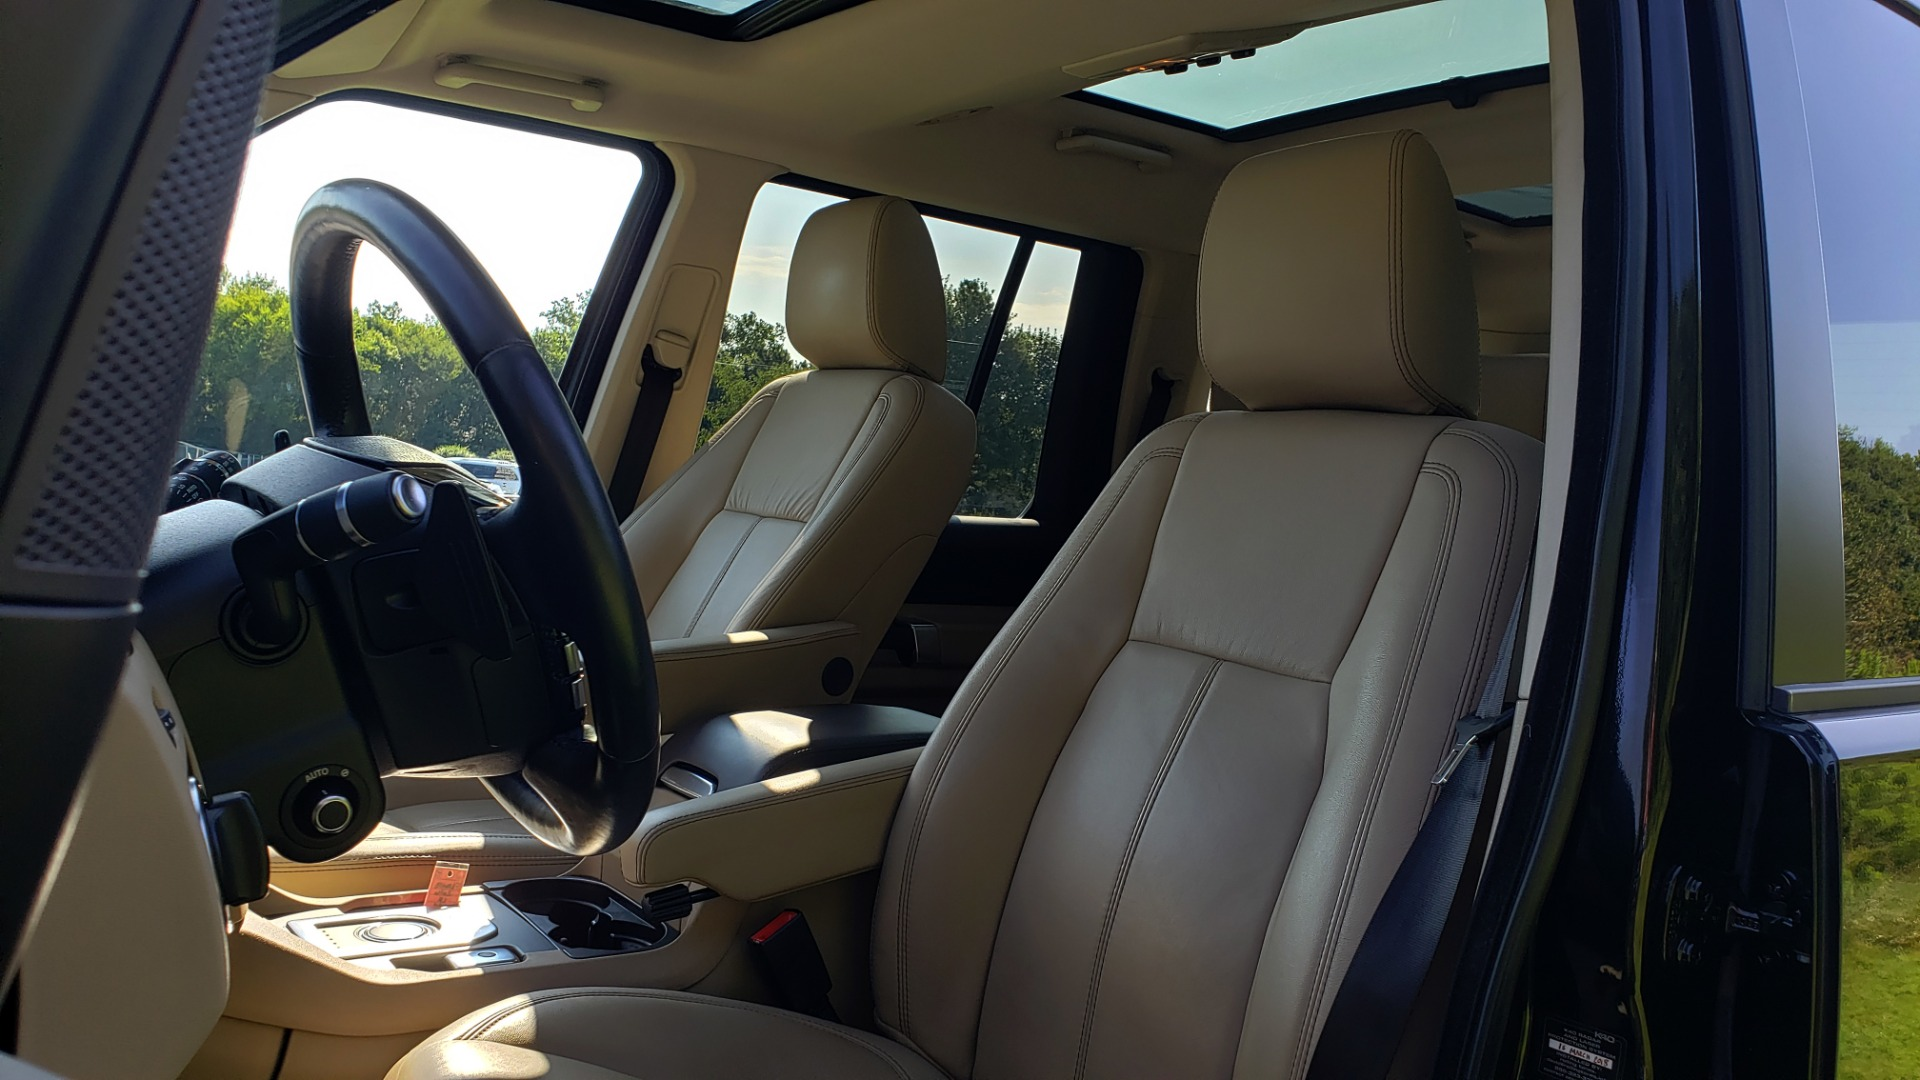 Used 2016 Land Rover LR4 HSE LUX LANDMARK EDITION / NAV / HTD STS / SUNROOF / REARVIEW for sale Sold at Formula Imports in Charlotte NC 28227 41